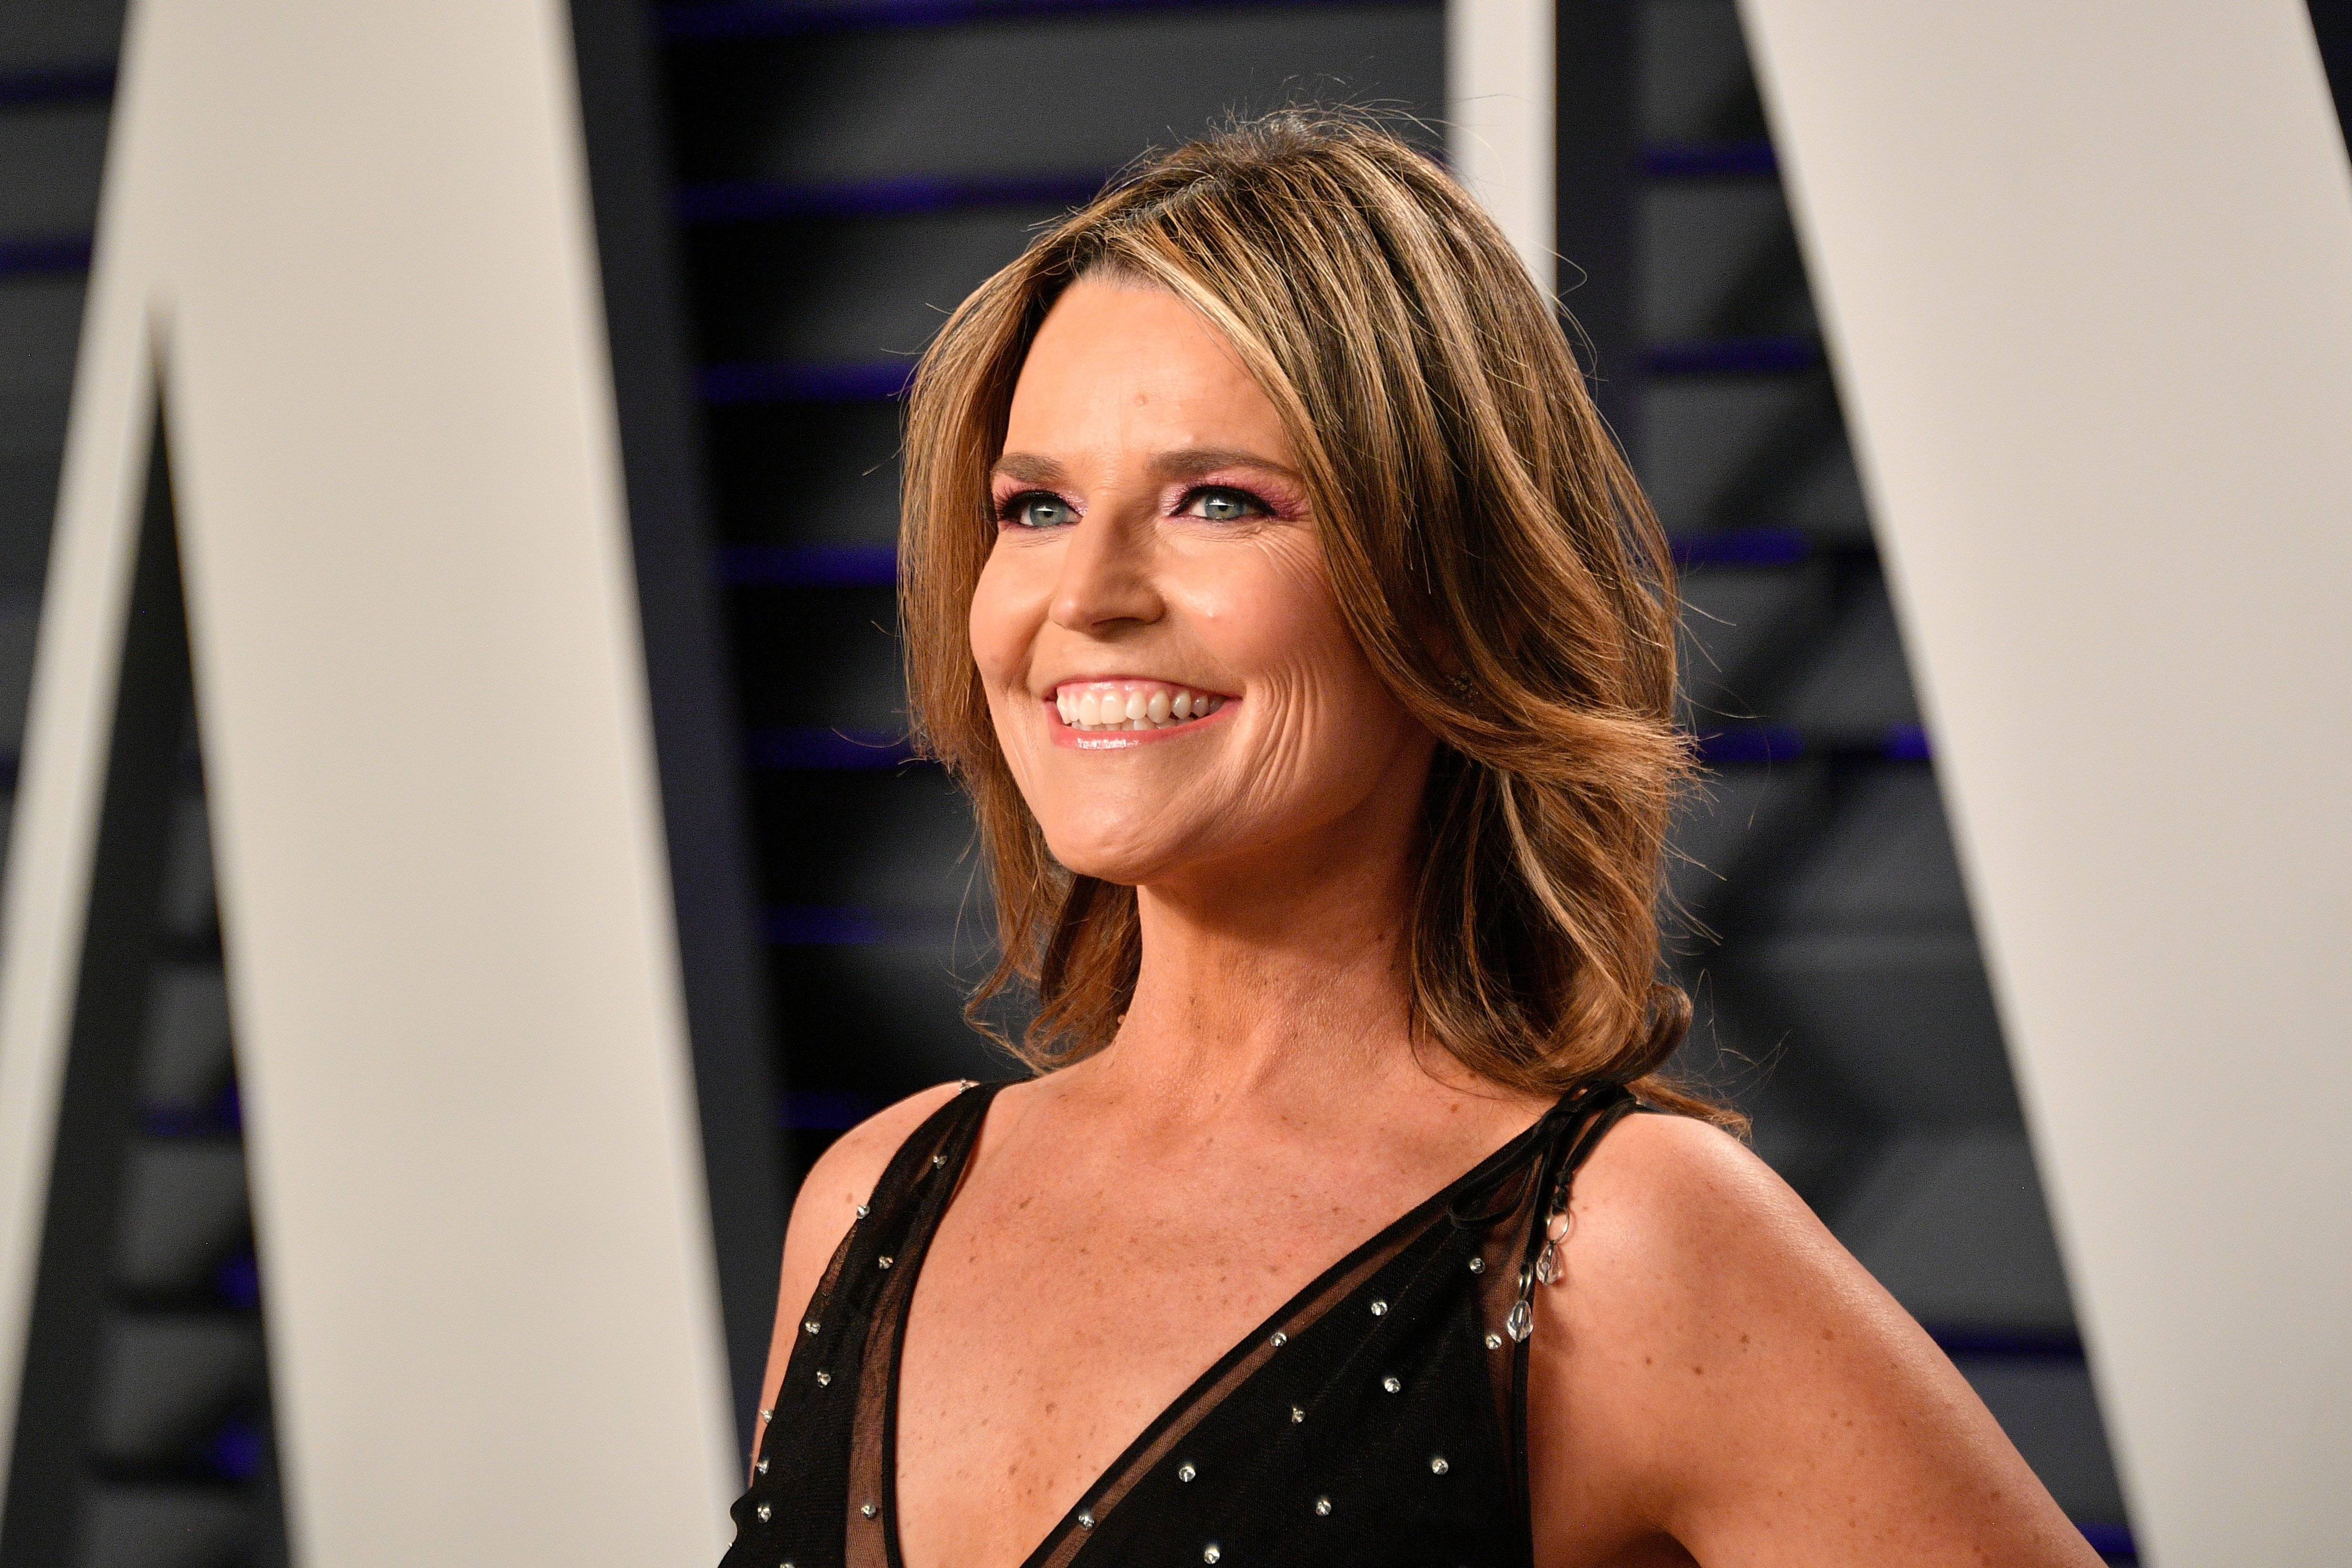 Savannah Guthrie attends the 2019 Vanity Fair Oscar Party hosted by Radhika Jones at Wallis Annenberg Center for the Performing Arts on February 24, 2019 | Photo: GettyImages